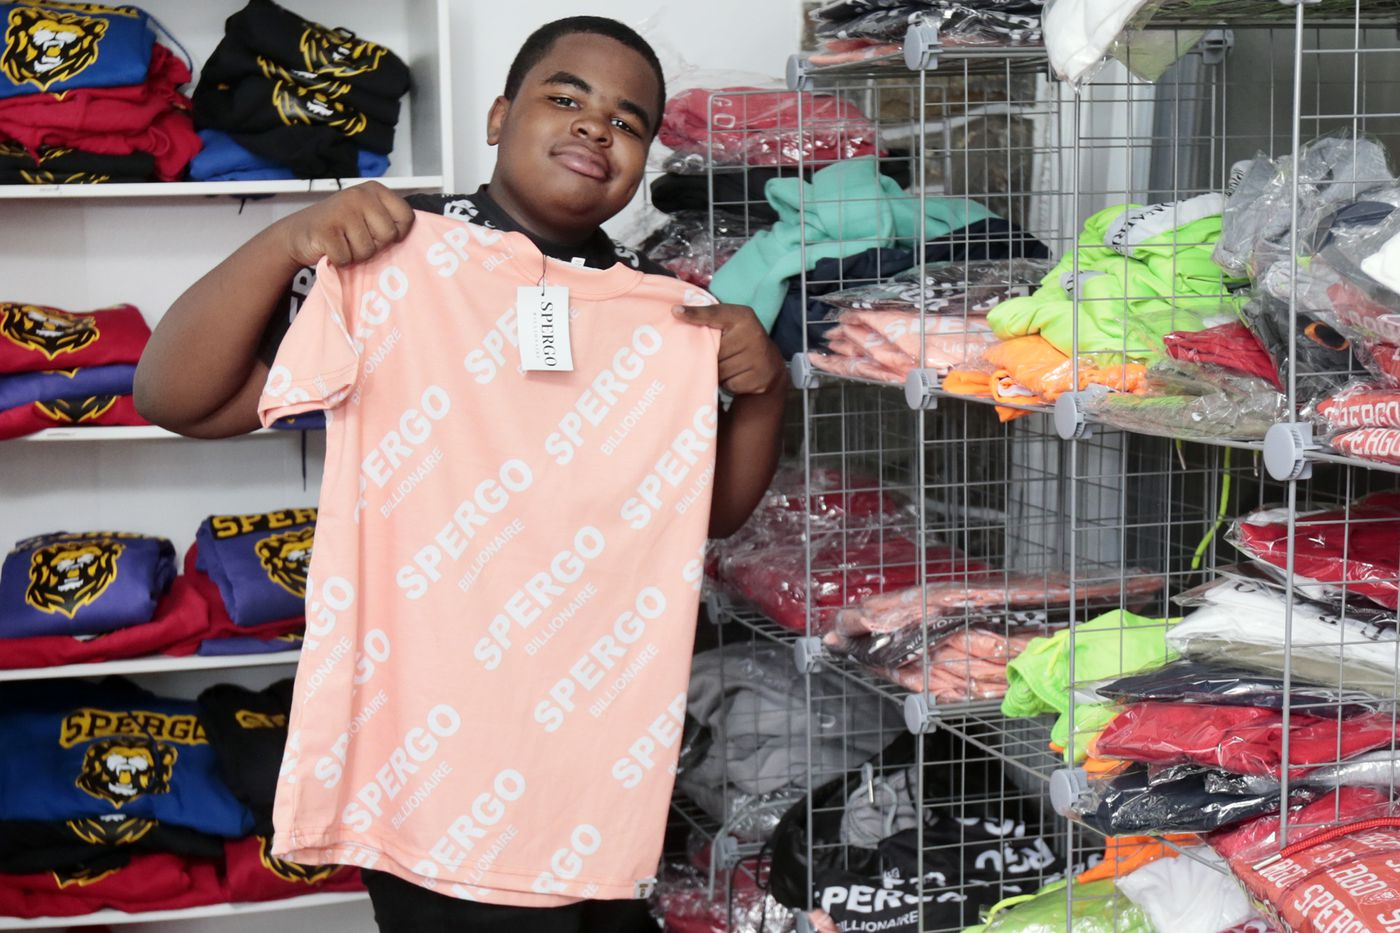 Thirteen-year-old Trey Brown whose fashion line, Spergo, has landed a billboard in Times Square, displays some of his wares at his home in Lansdowne.